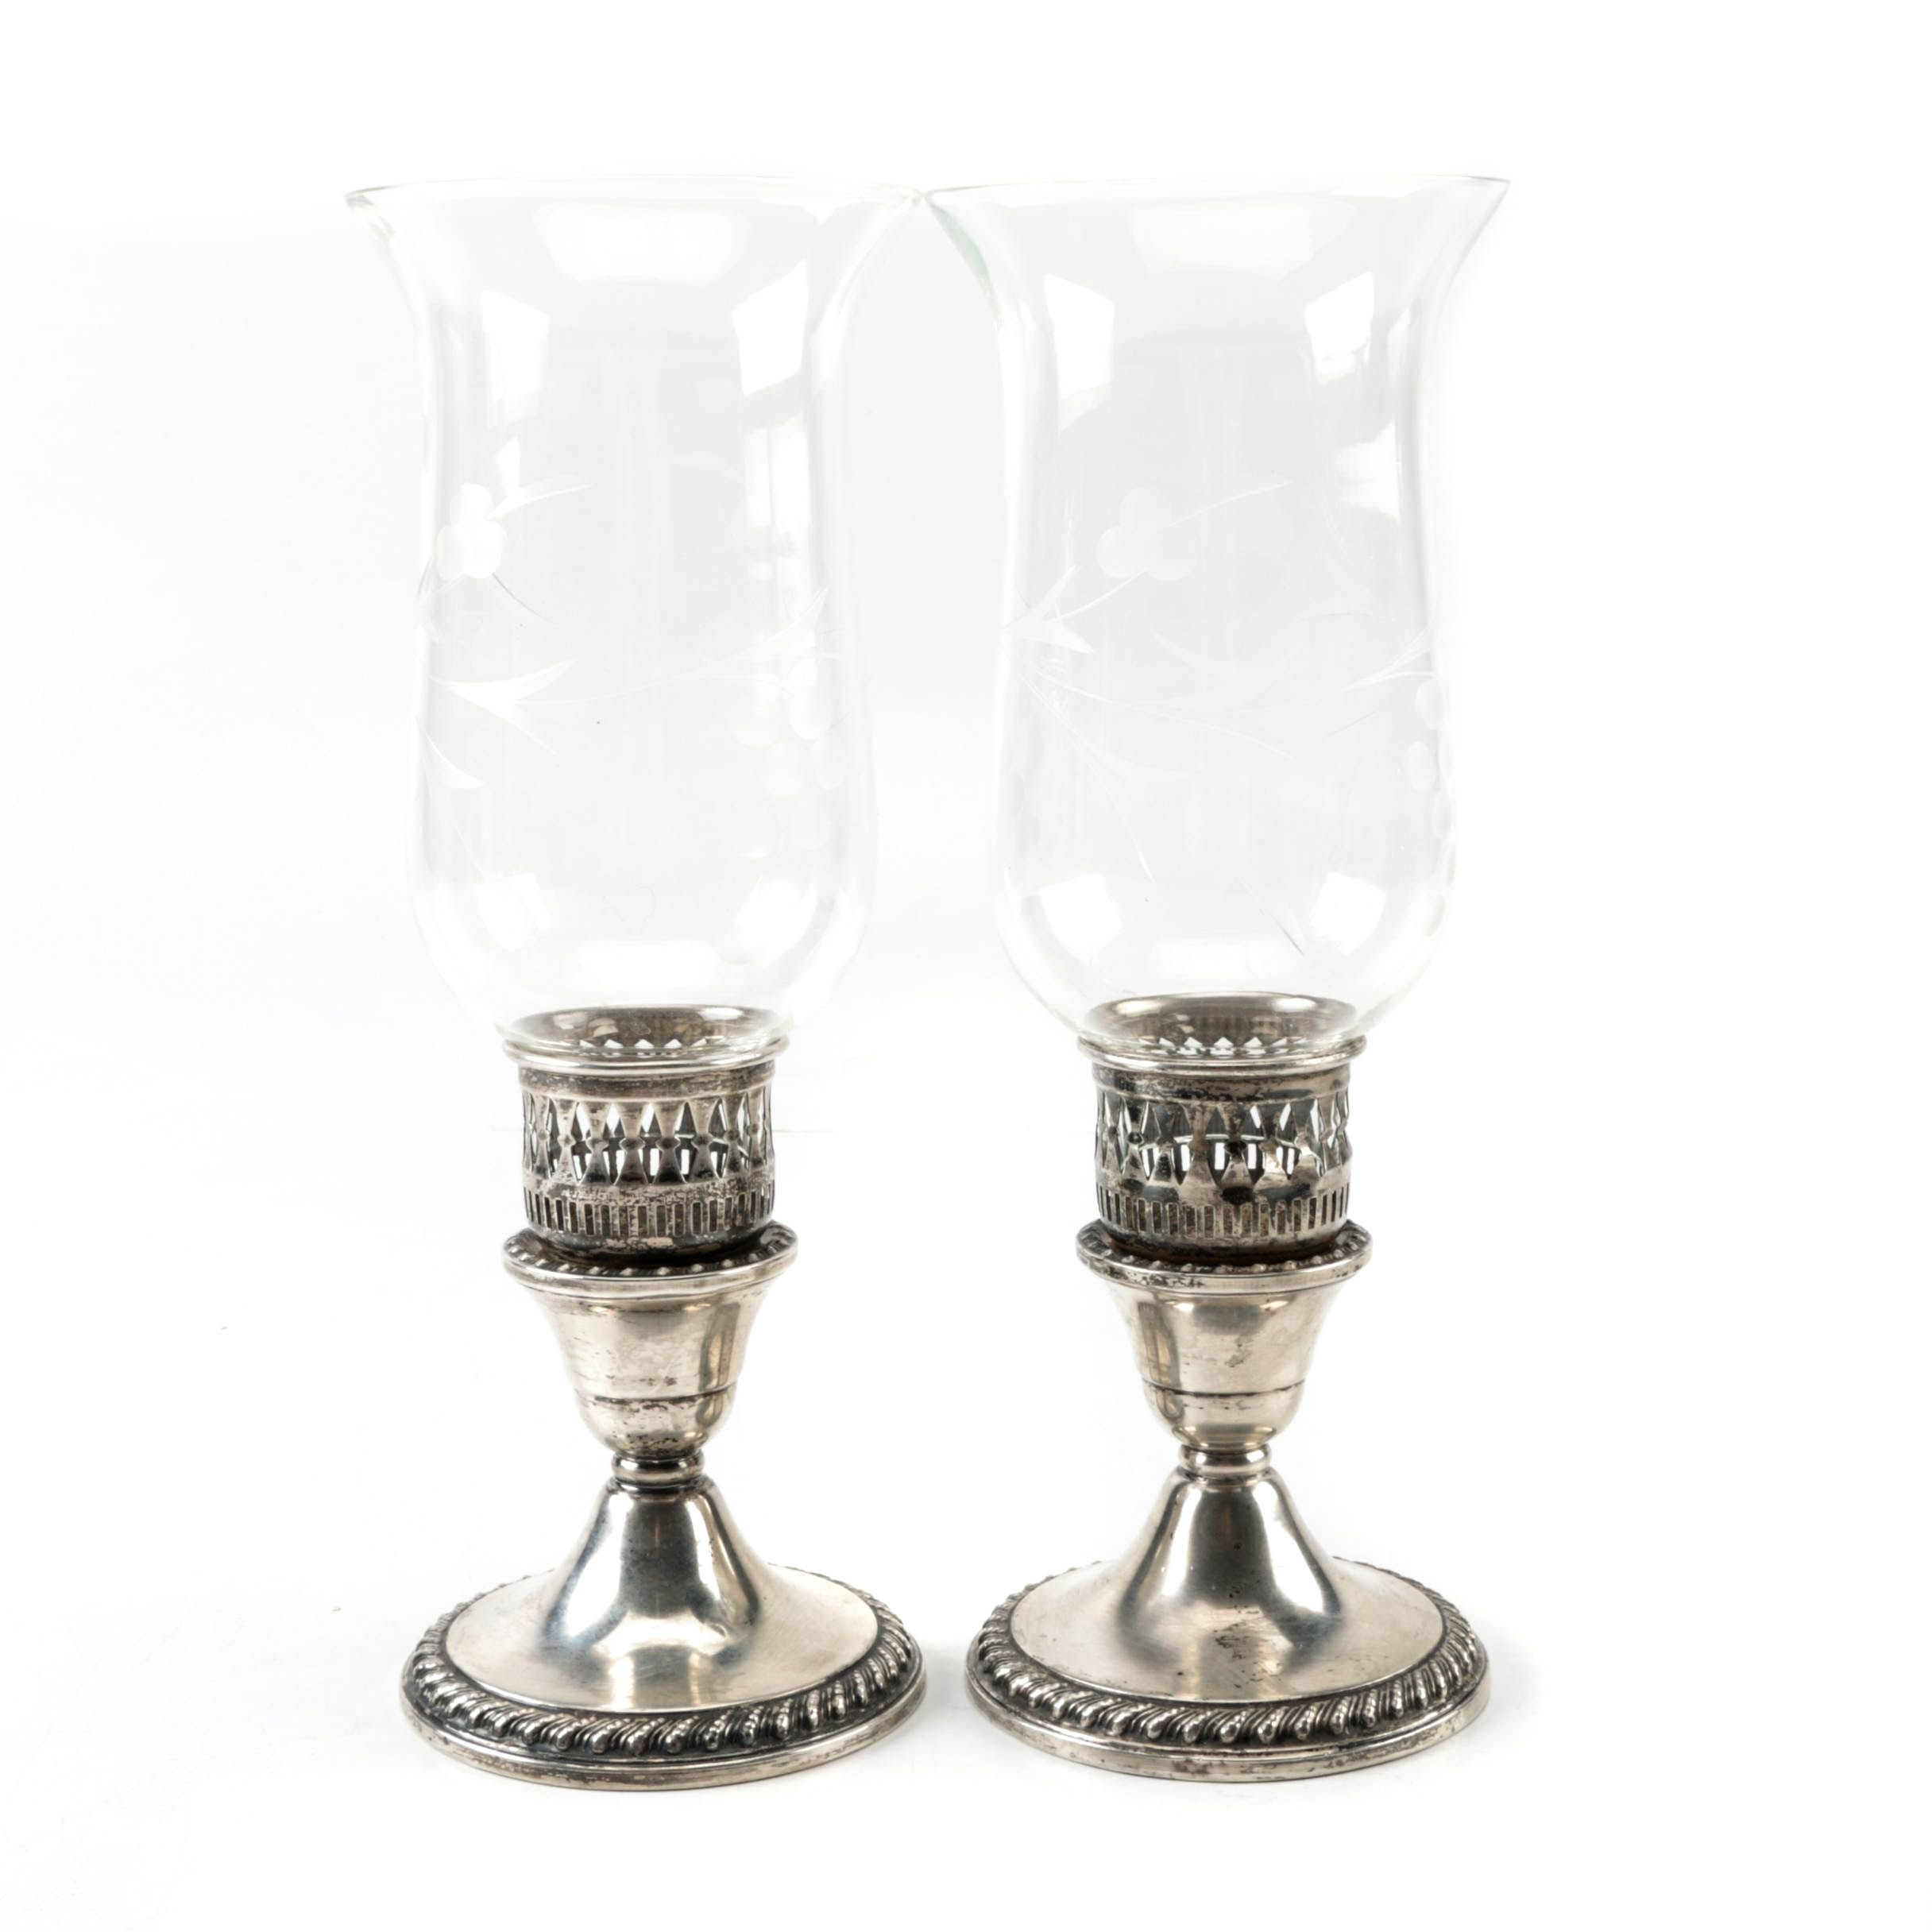 Rogers Weighted Sterling Silver Candleholders and Etched Glass Hurricanes